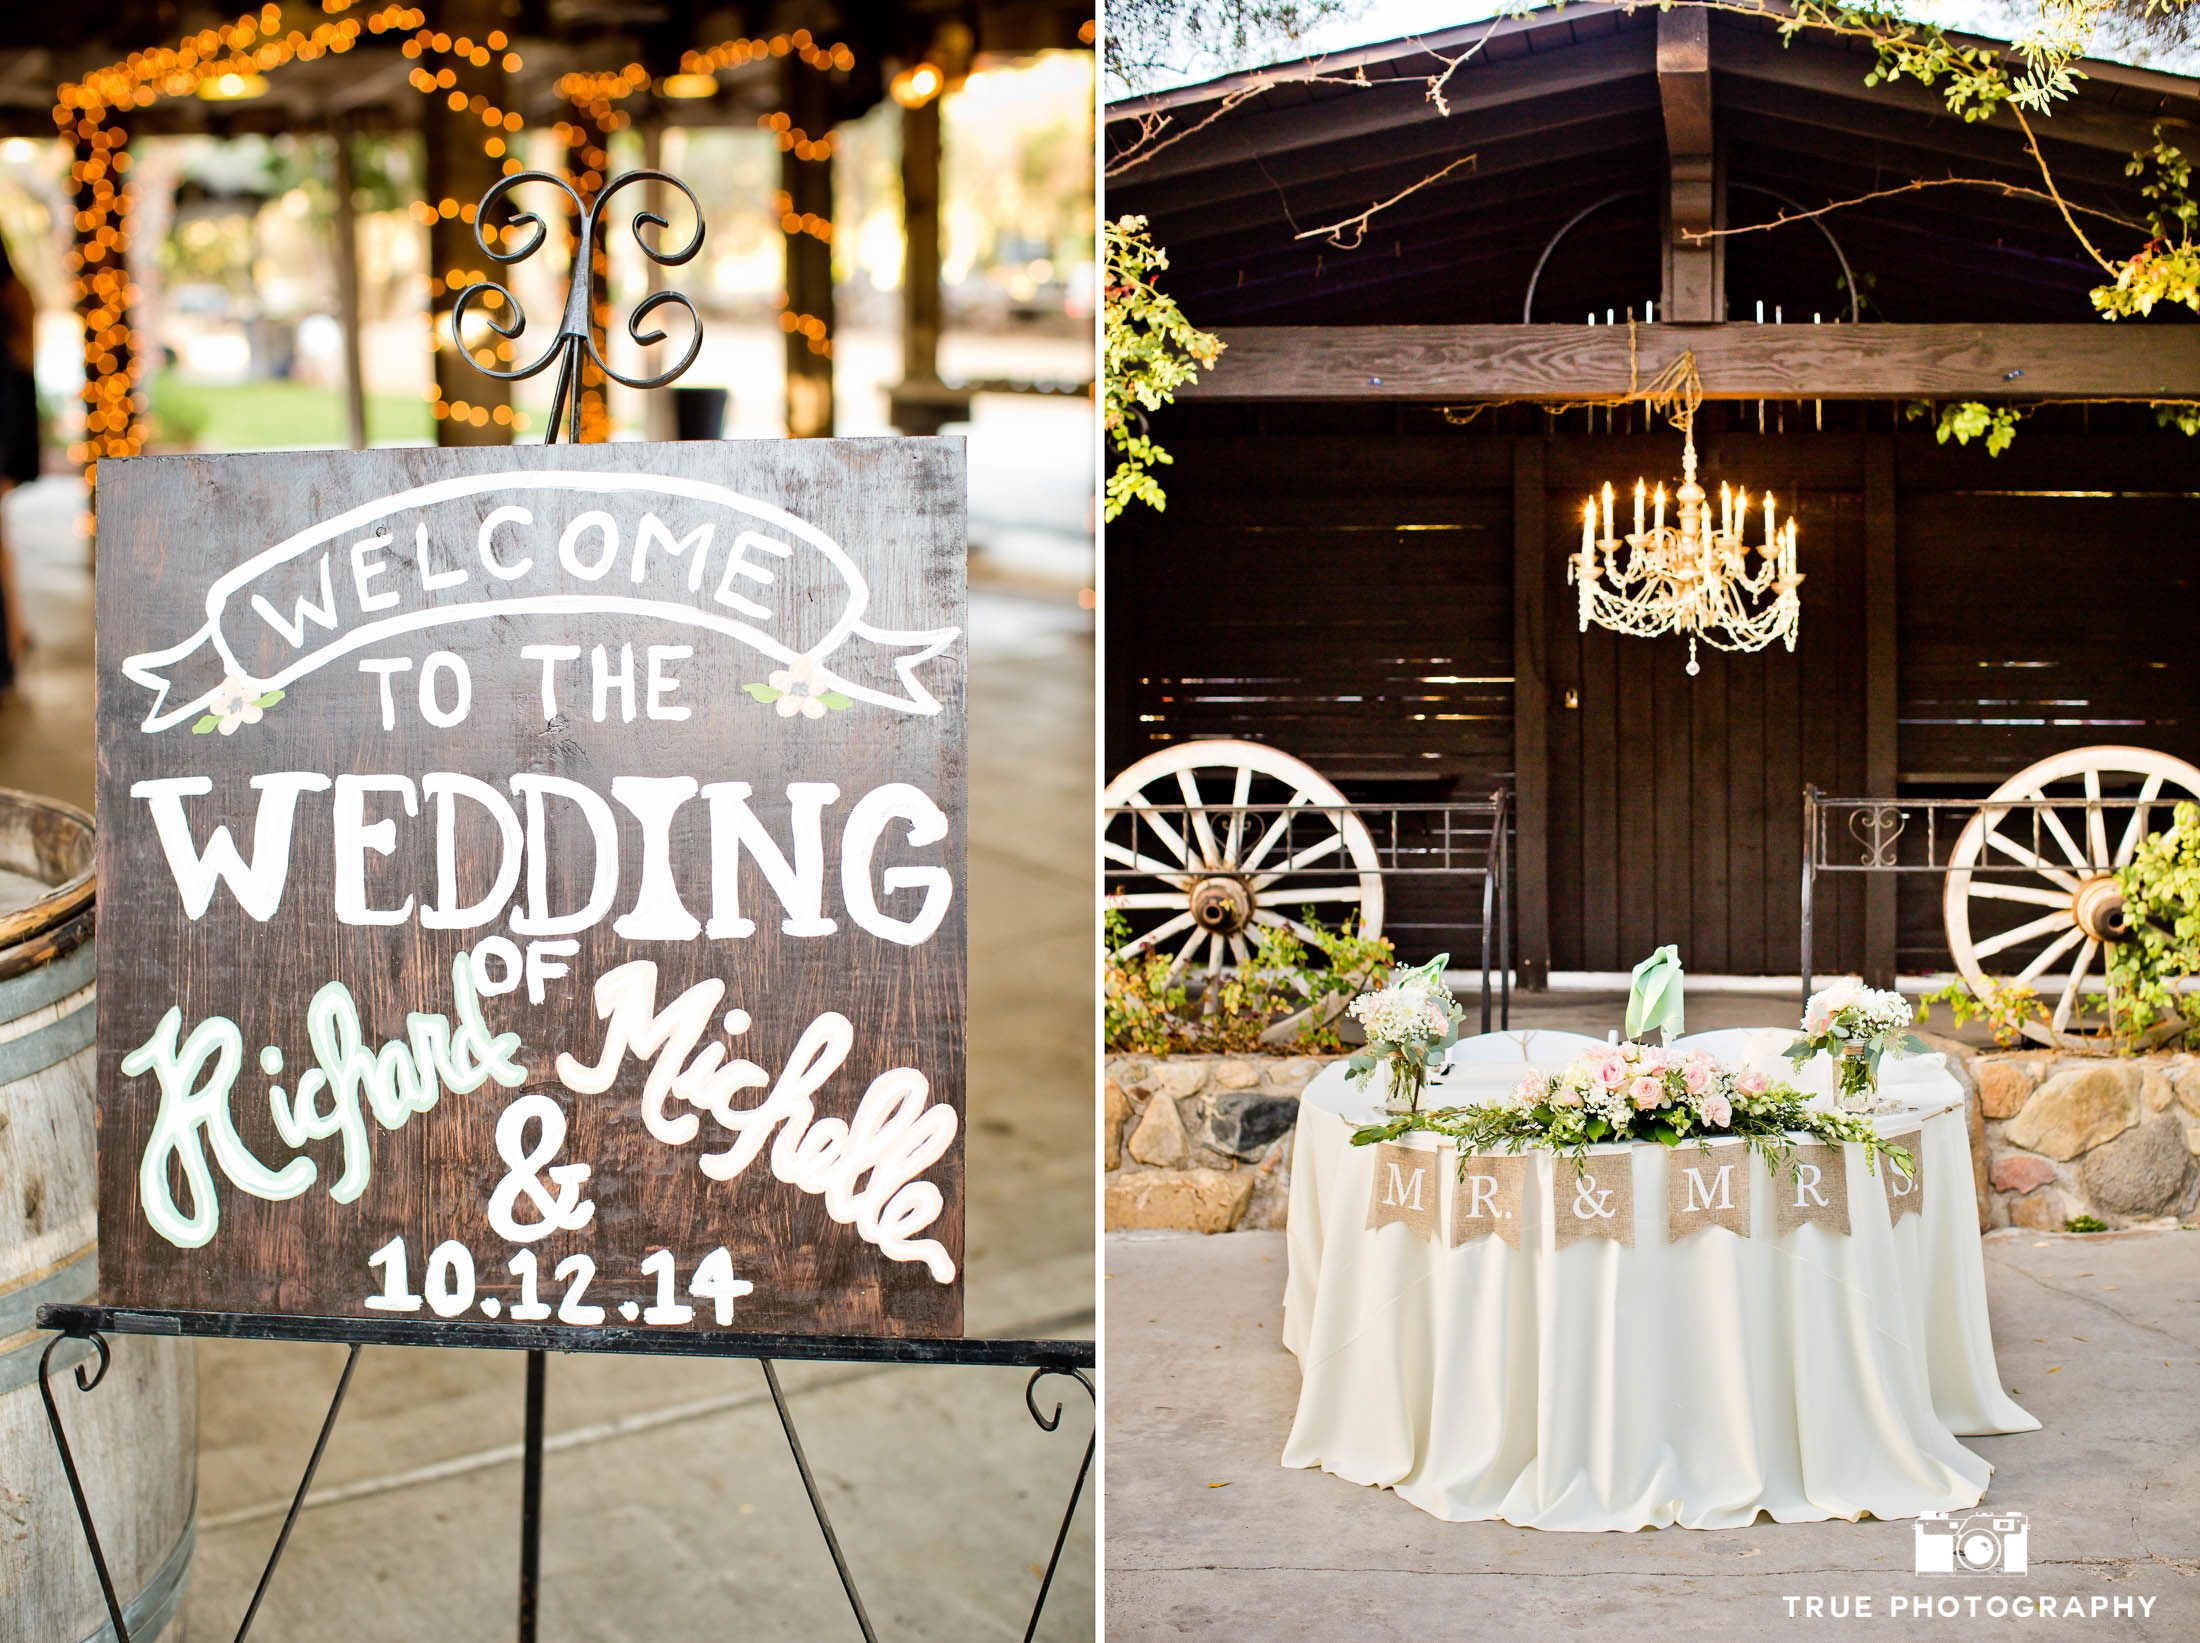 Rustic-themed details at vineyard wedding reception